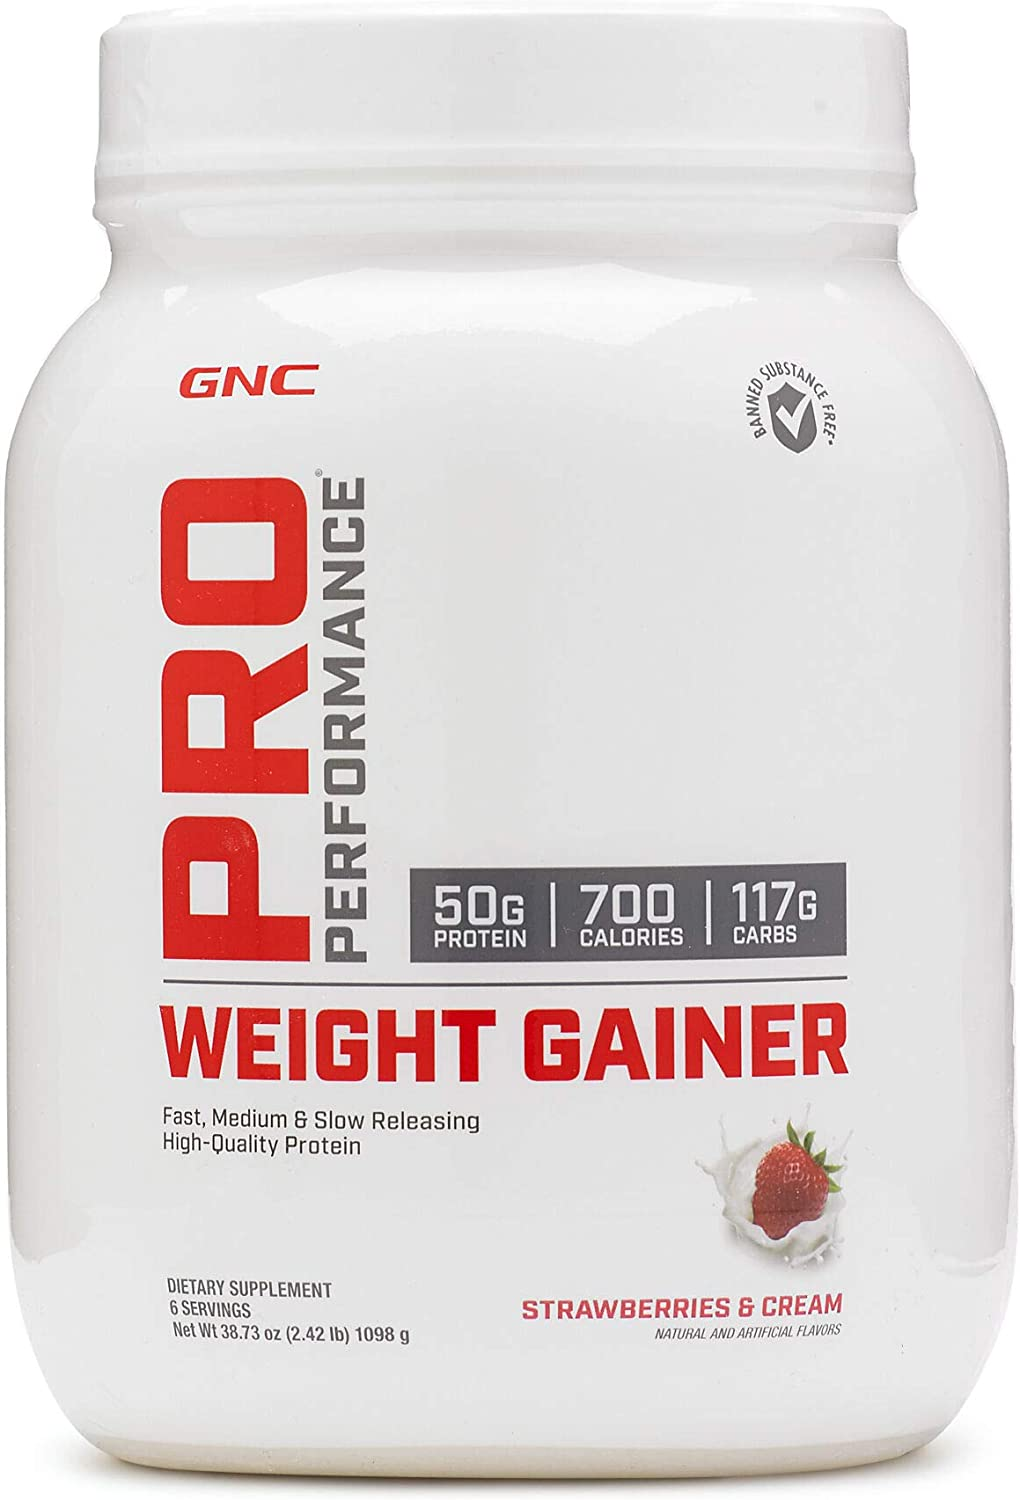 GNC Pro Performance Regular dealer Weight Max 50% OFF Gainer - Se and Cream Strawberries 6